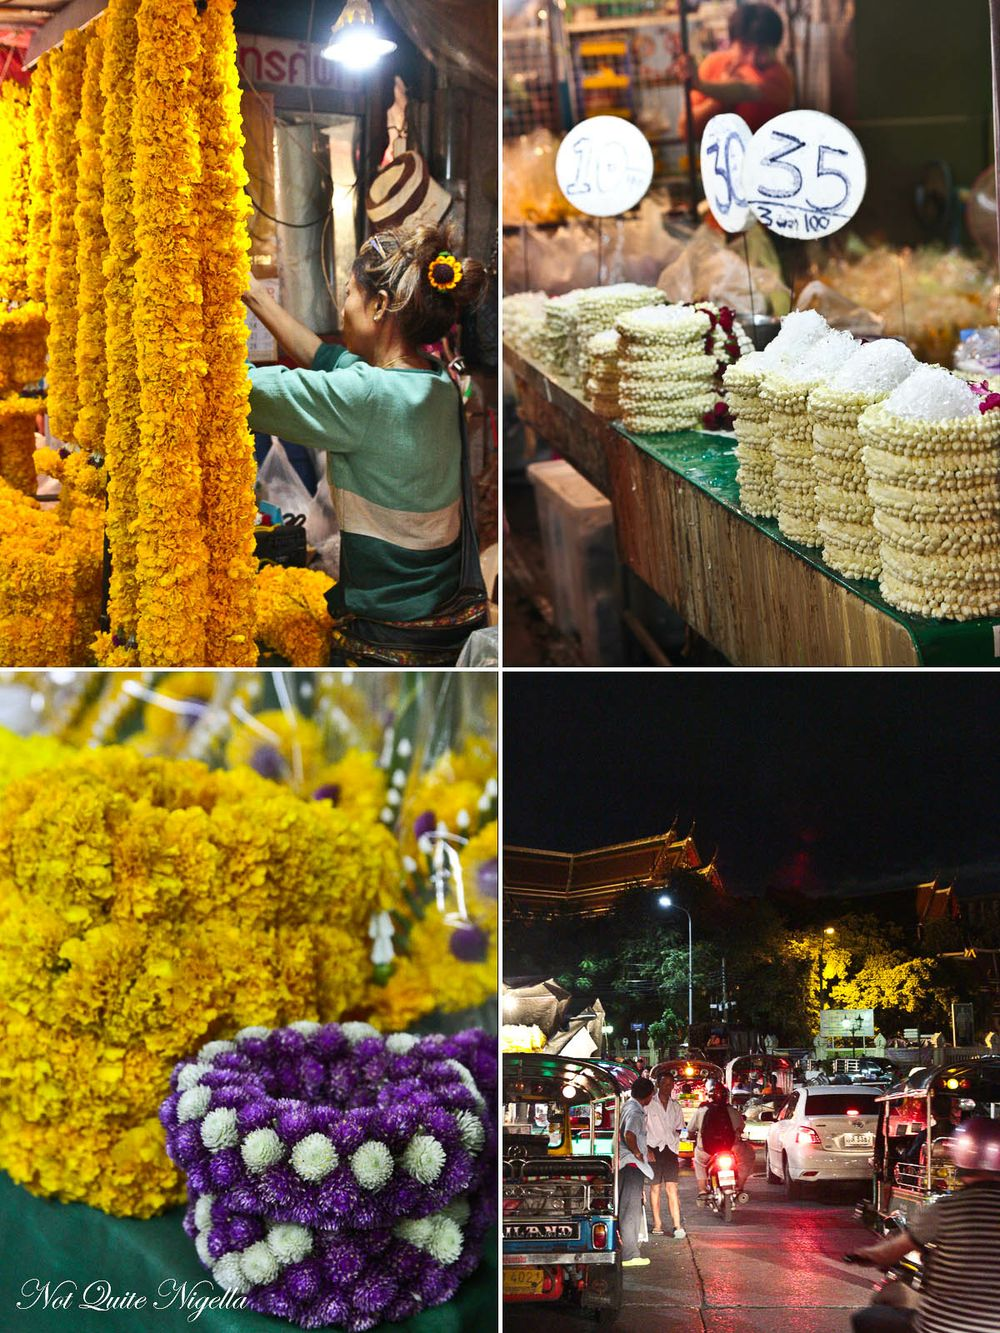 a-flower-markets-2